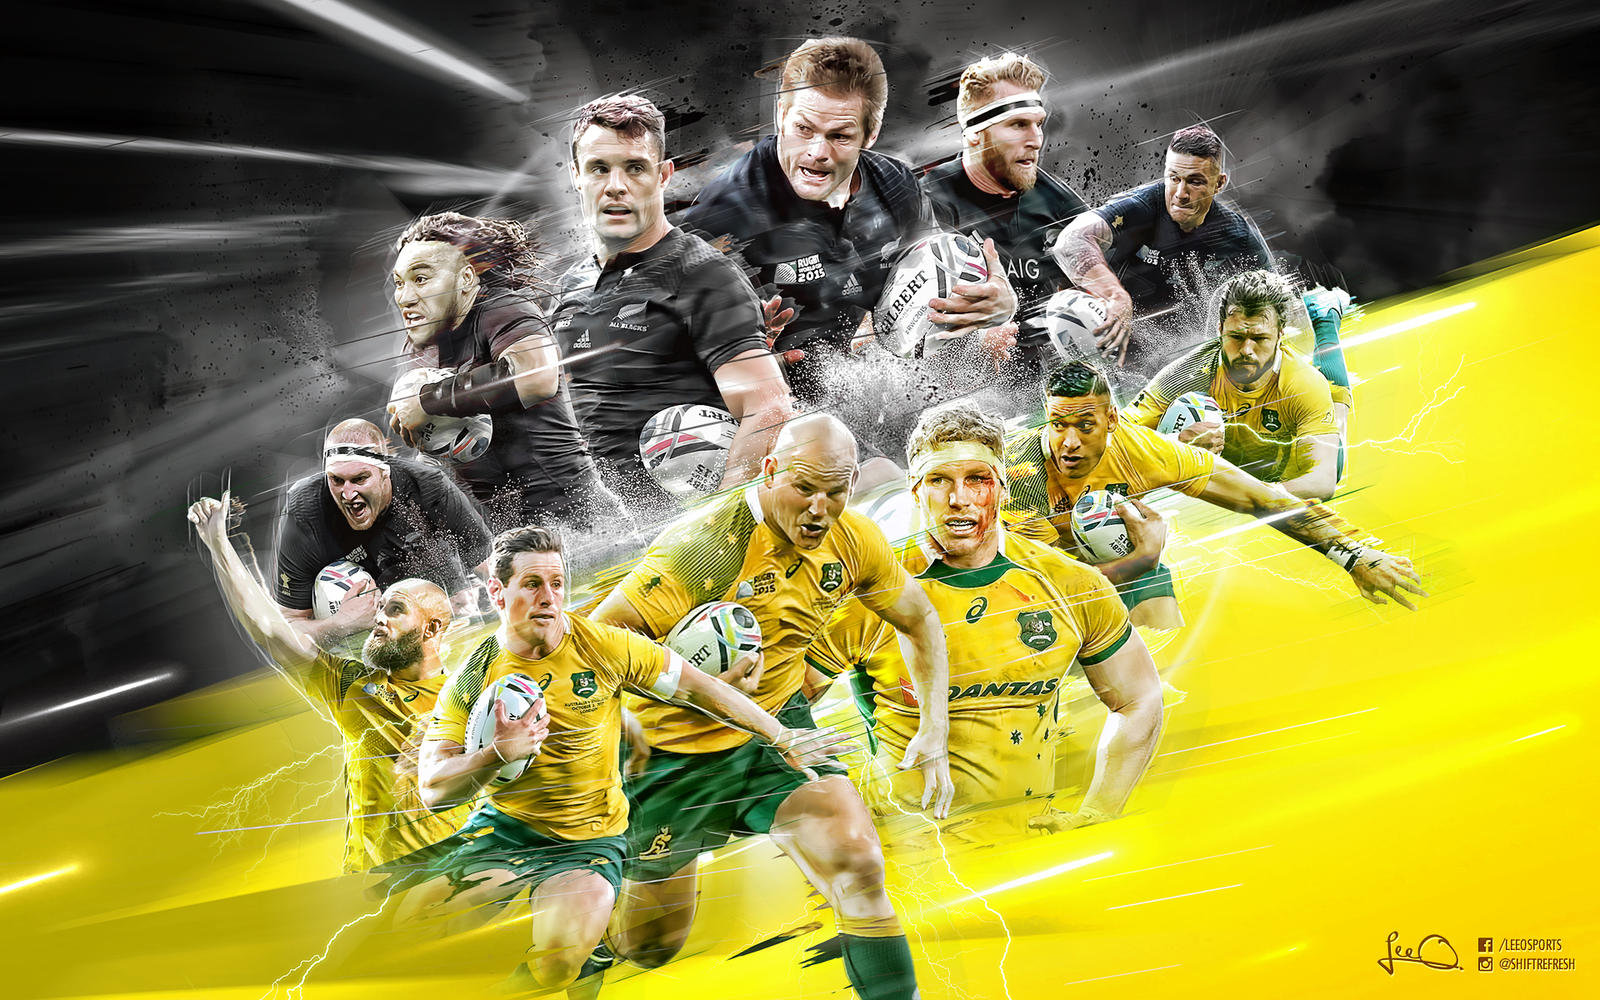 ef46e92bcf8 Match Thread: New Zealand vs Australia | RWC2015 Final : rugbyunion